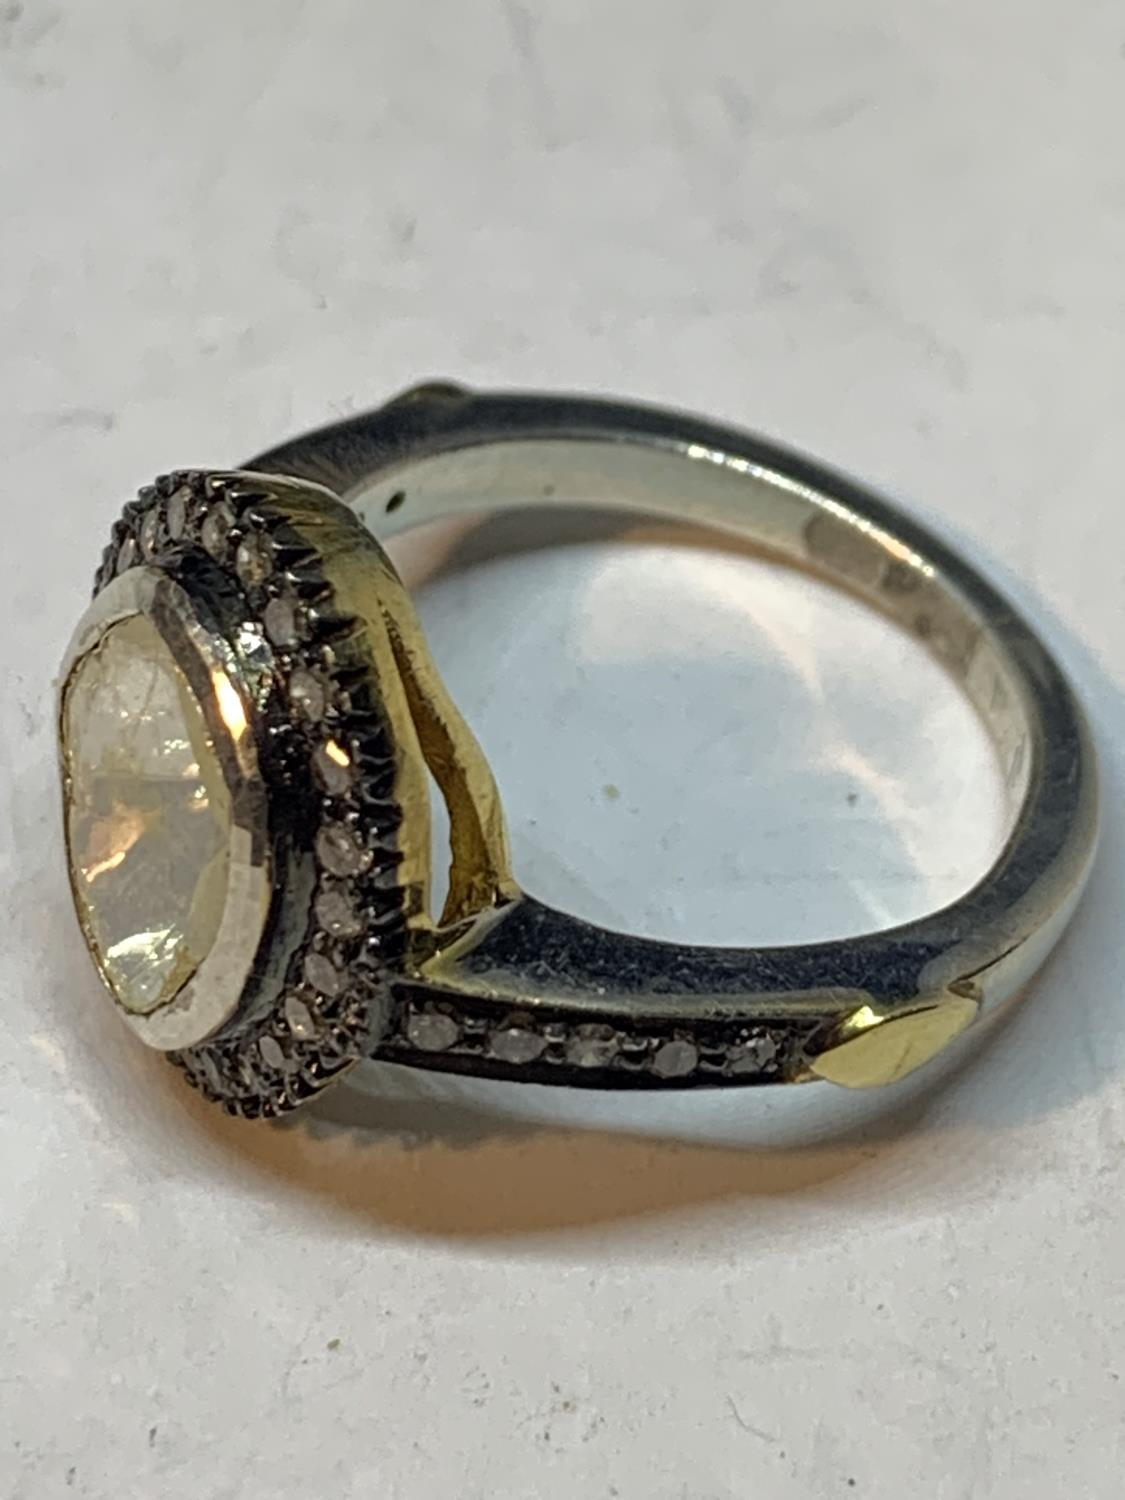 A CONTINENTAL WHITE AND YELLOW METAL RING WITH CENTRE DIAMOND AND SMALLER SURROUNDING DIAMONDS WHICH - Image 5 of 6